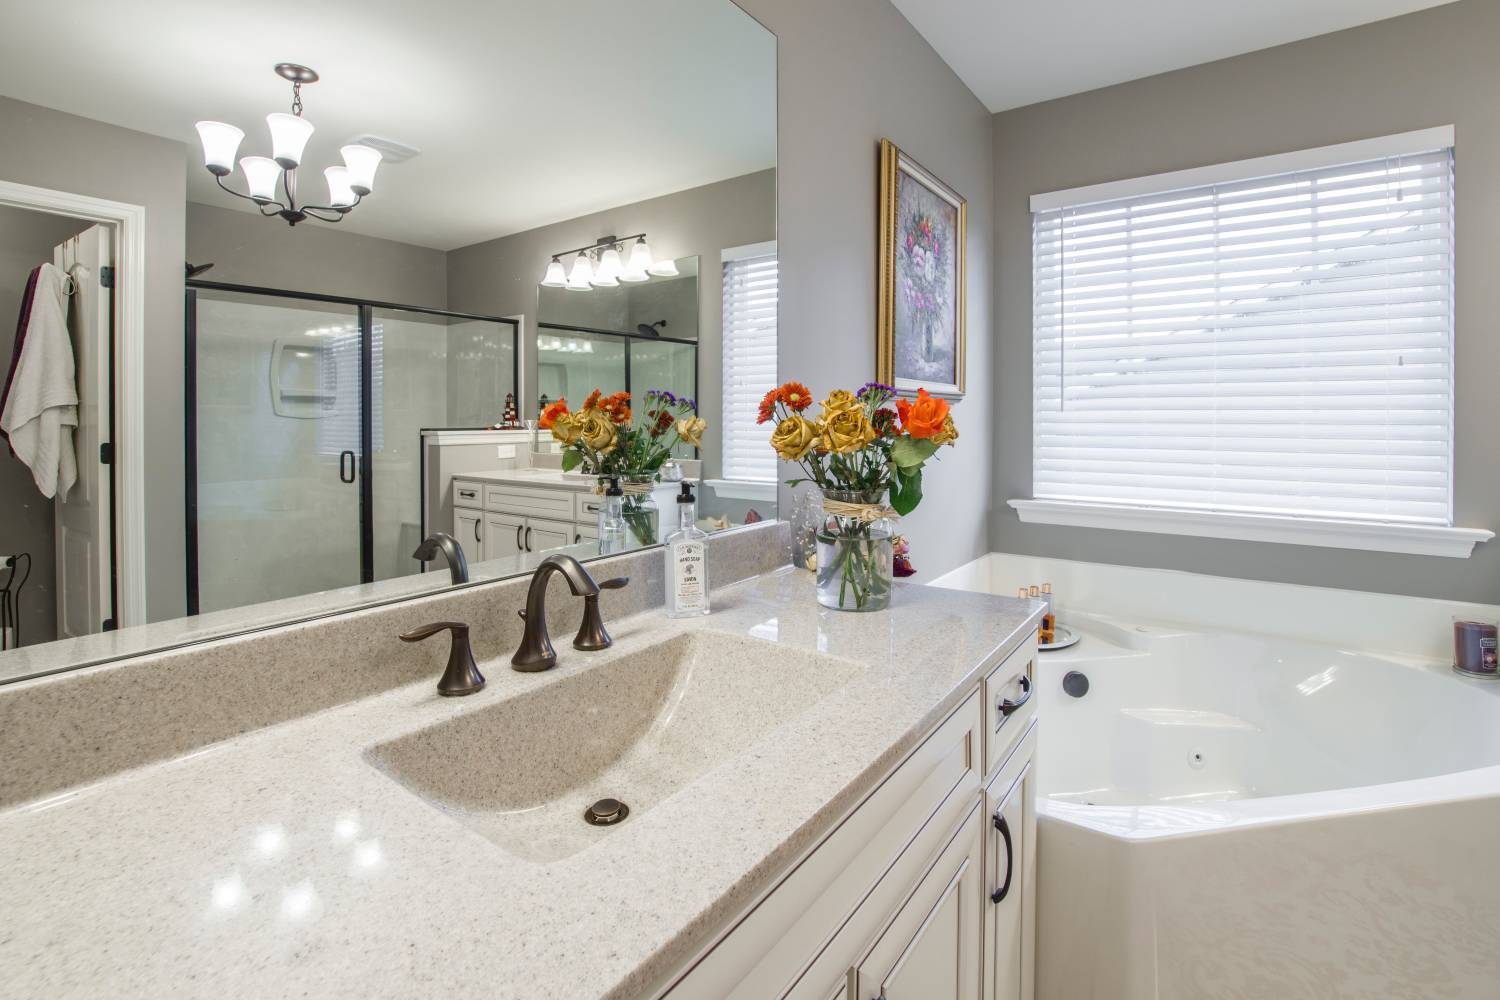 12 Bathroom Remodel Ideas to Look Out for in 12  KBR Kitchen & Bath